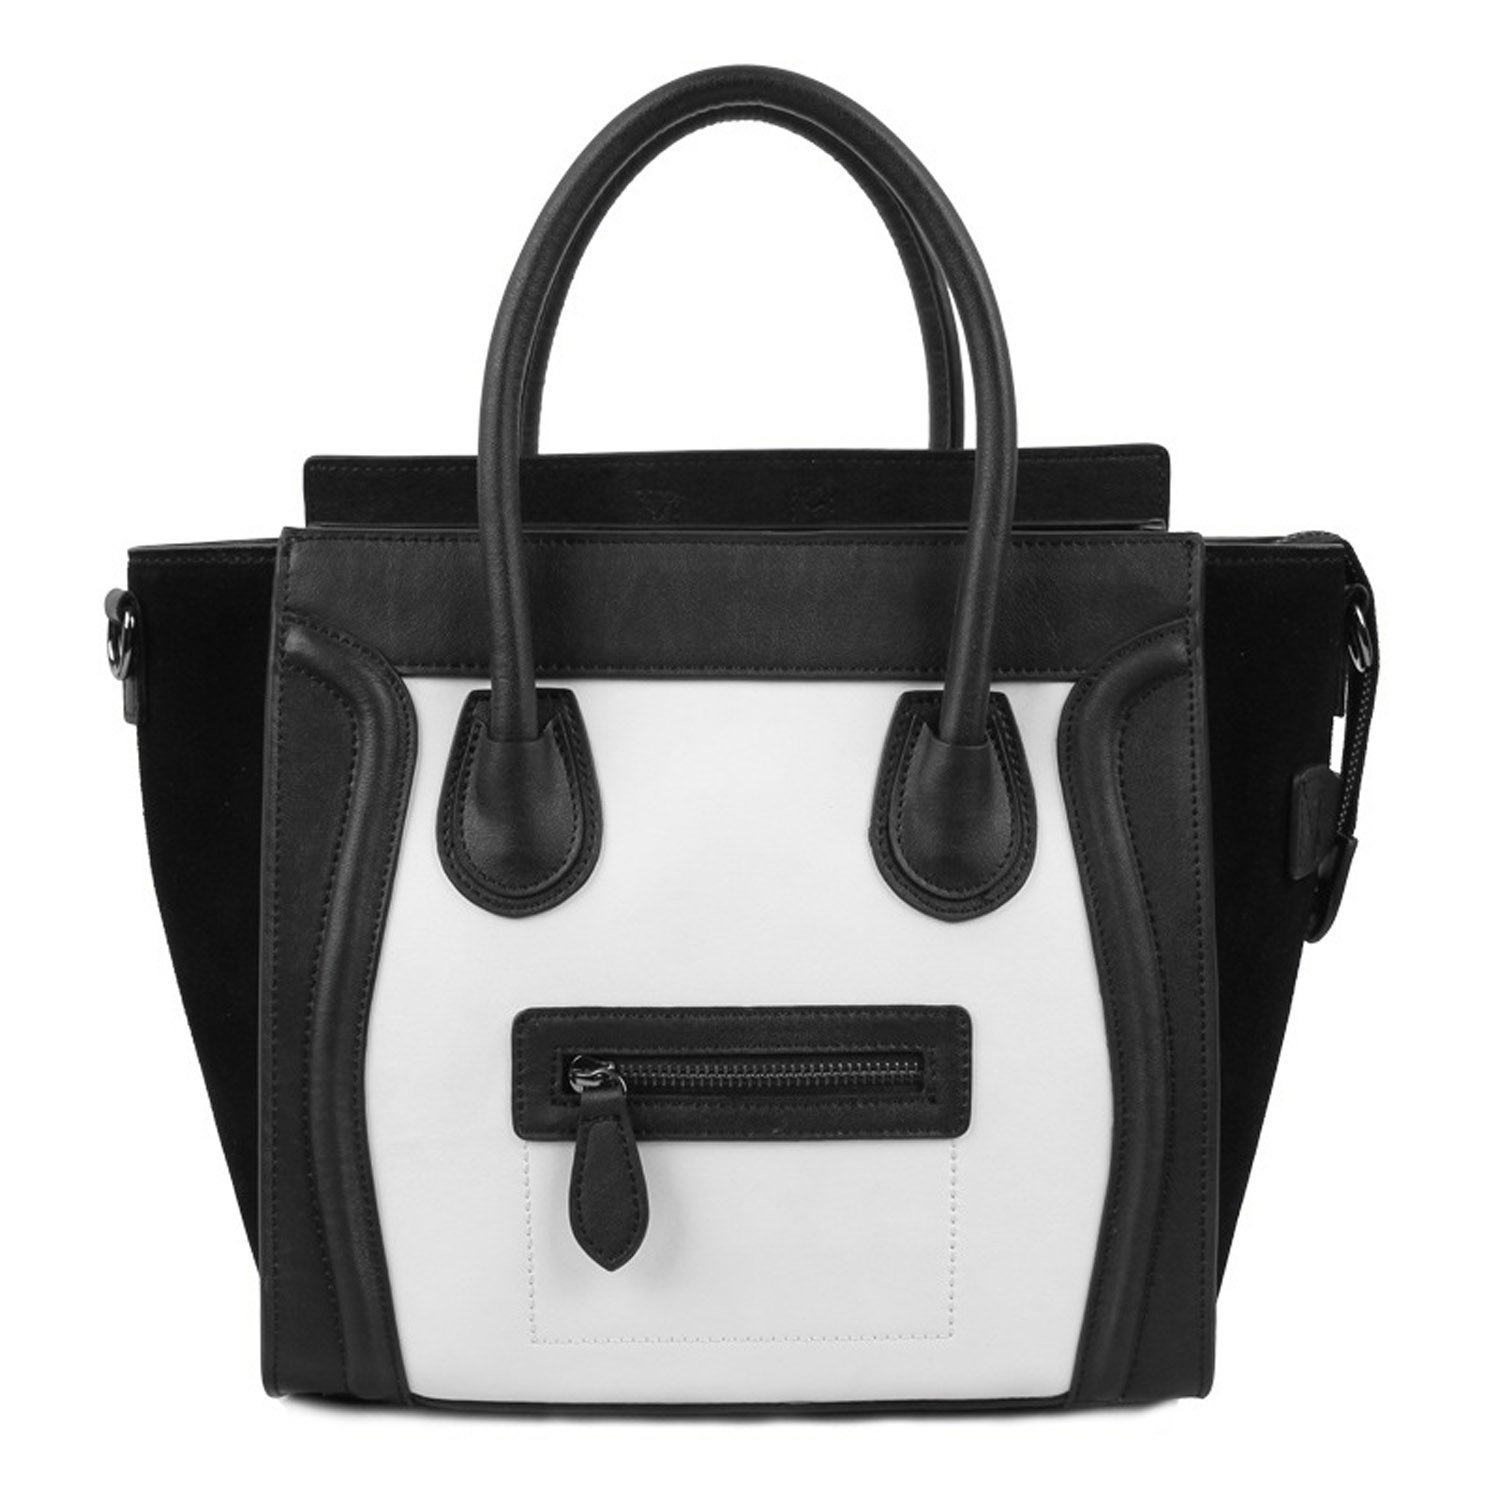 Amazon.com: EcoCity Women's Genuine Leather Europe Bats Phantom Smiling Face Handbag Purse (S3-White (Medium)): Shoes